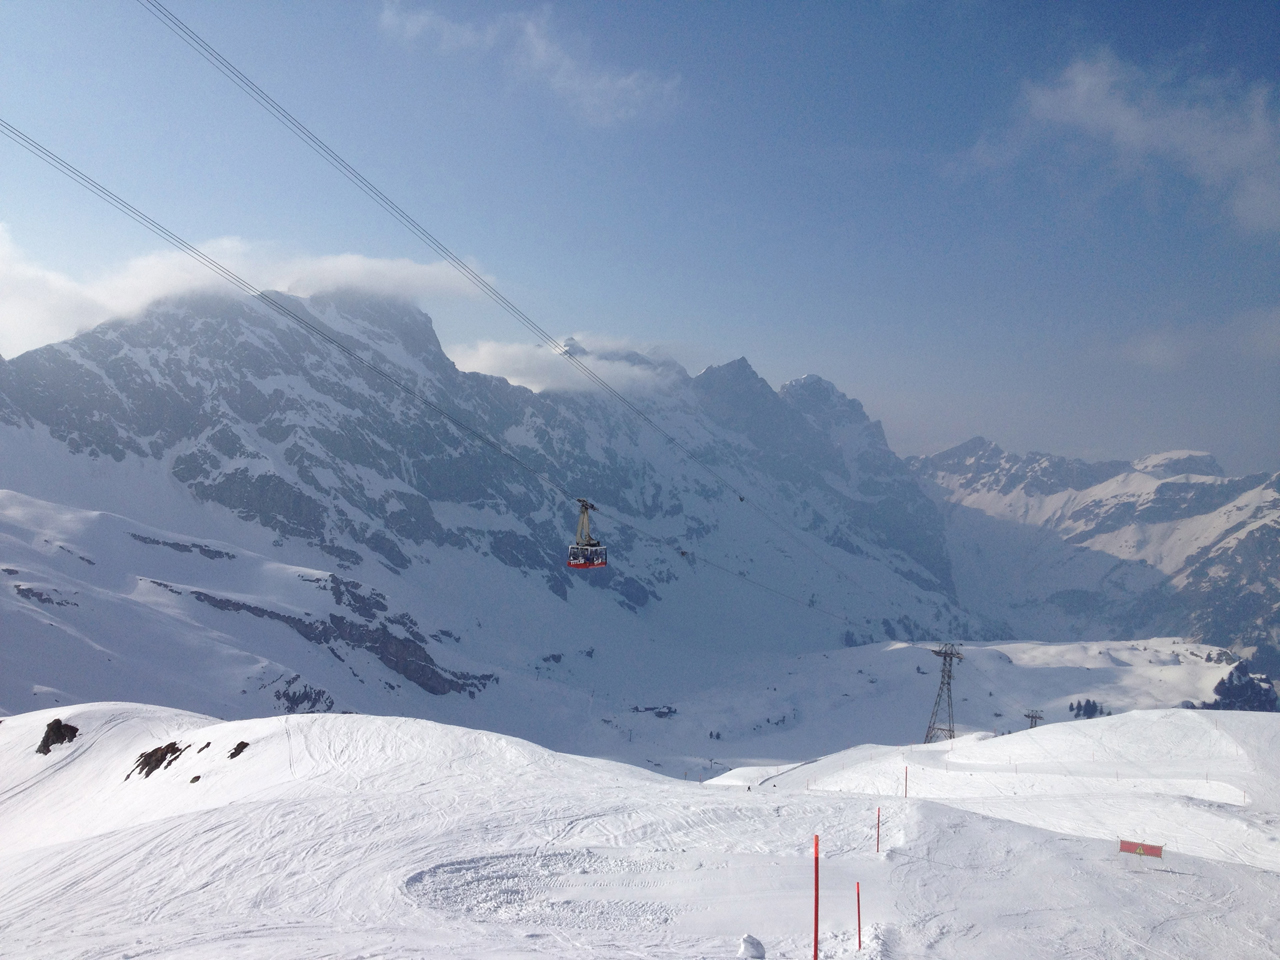 Engelberg has some of the best lift access skiing in Europe.